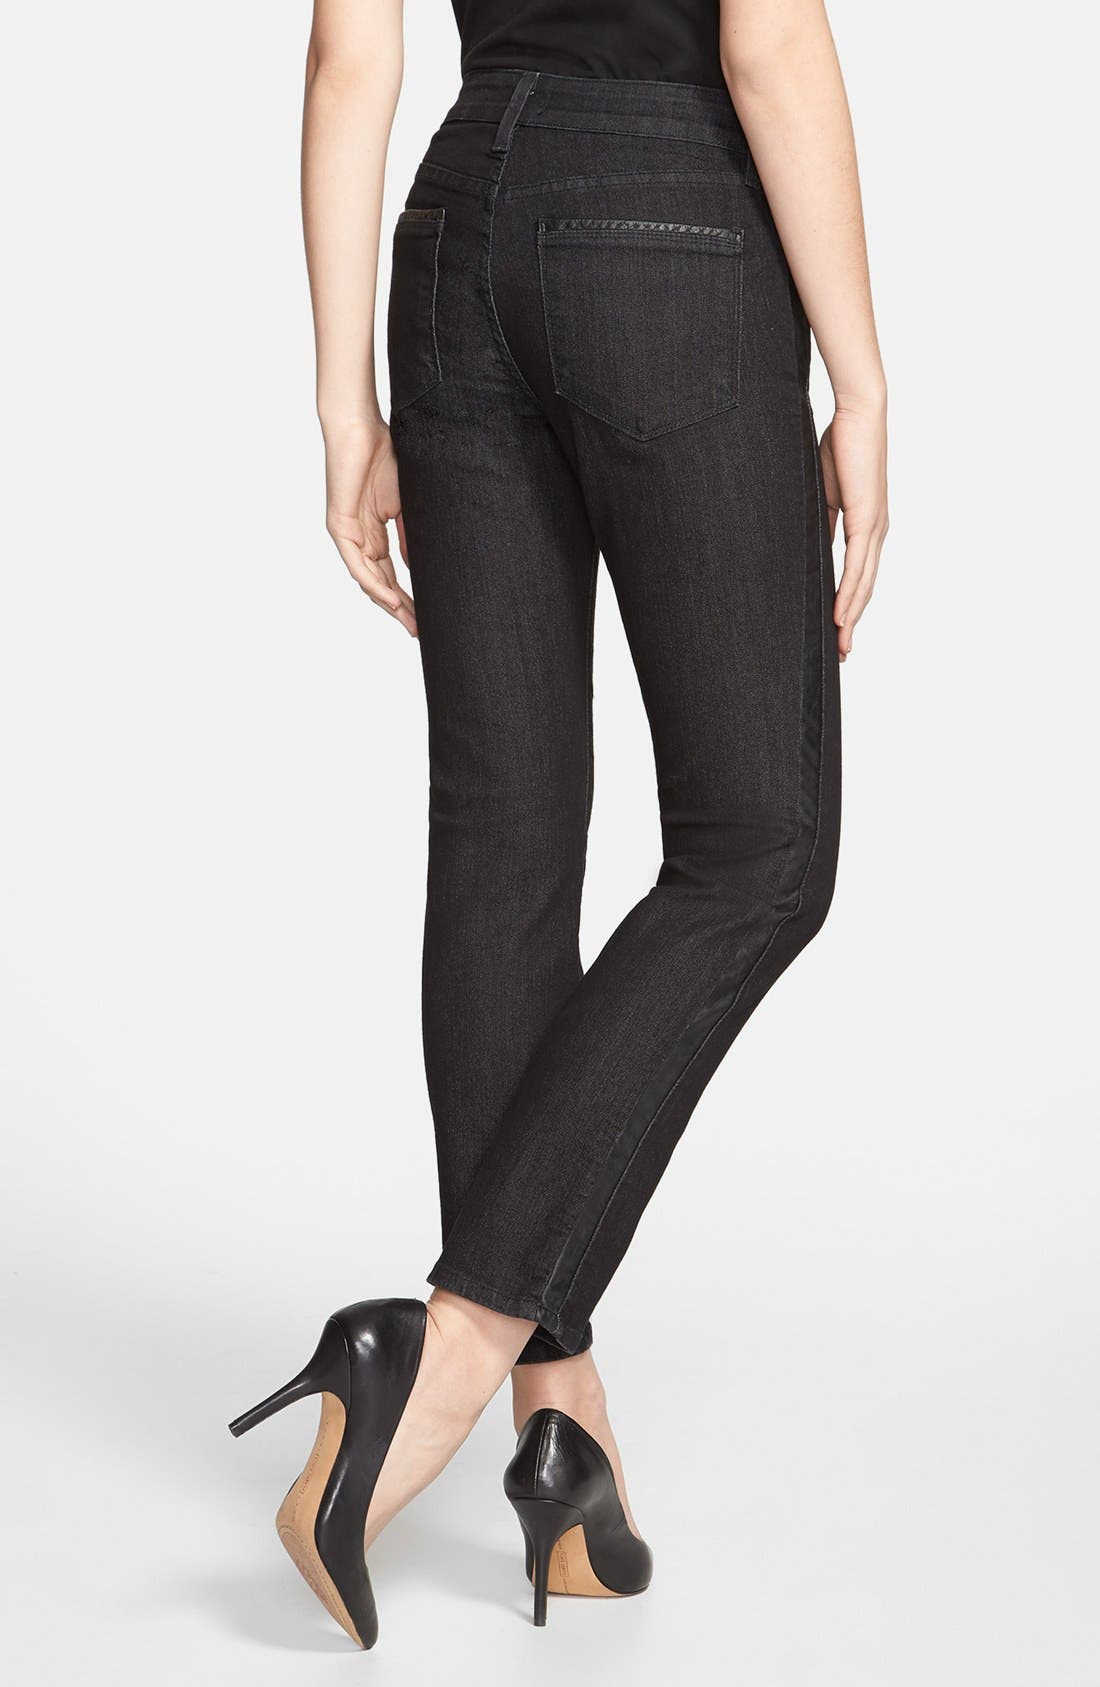 Alternate Image 2  - NYDJ 'Sheri' Tuxedo Stripe Stretch Skinny Jeans (Black) (Petite)